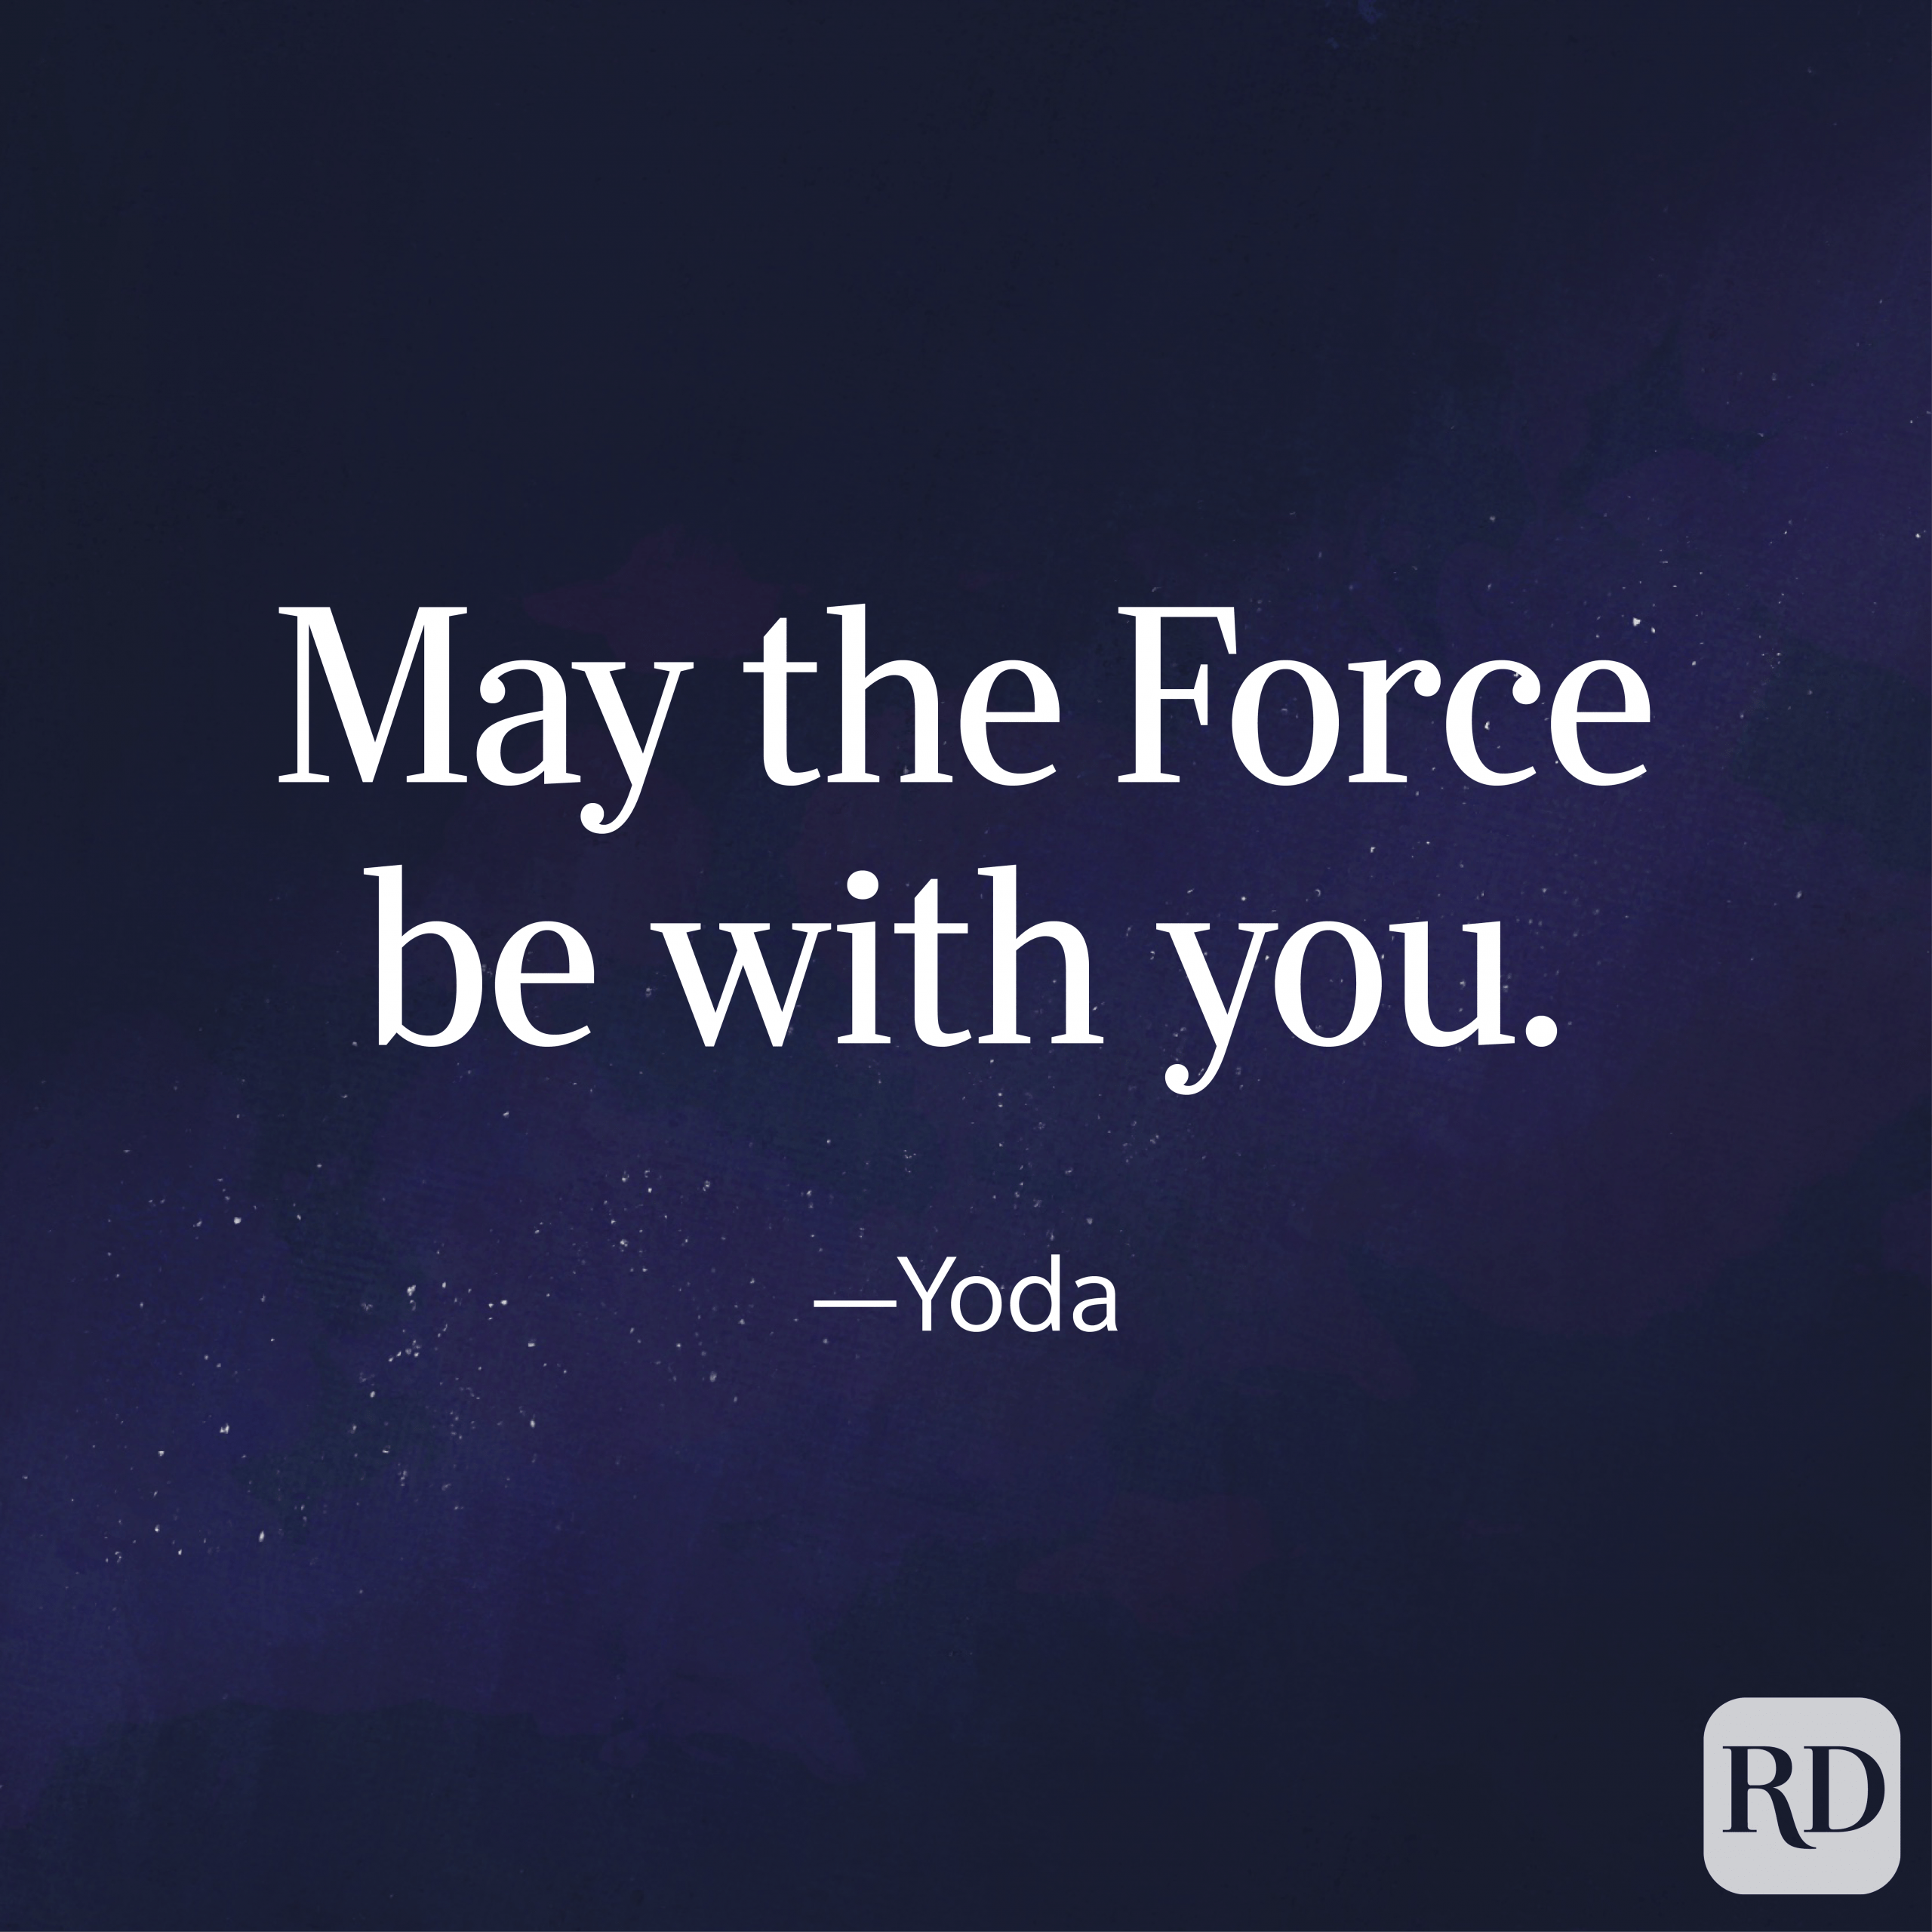 """May the force be with you."" Yoda quote on a galaxy background"